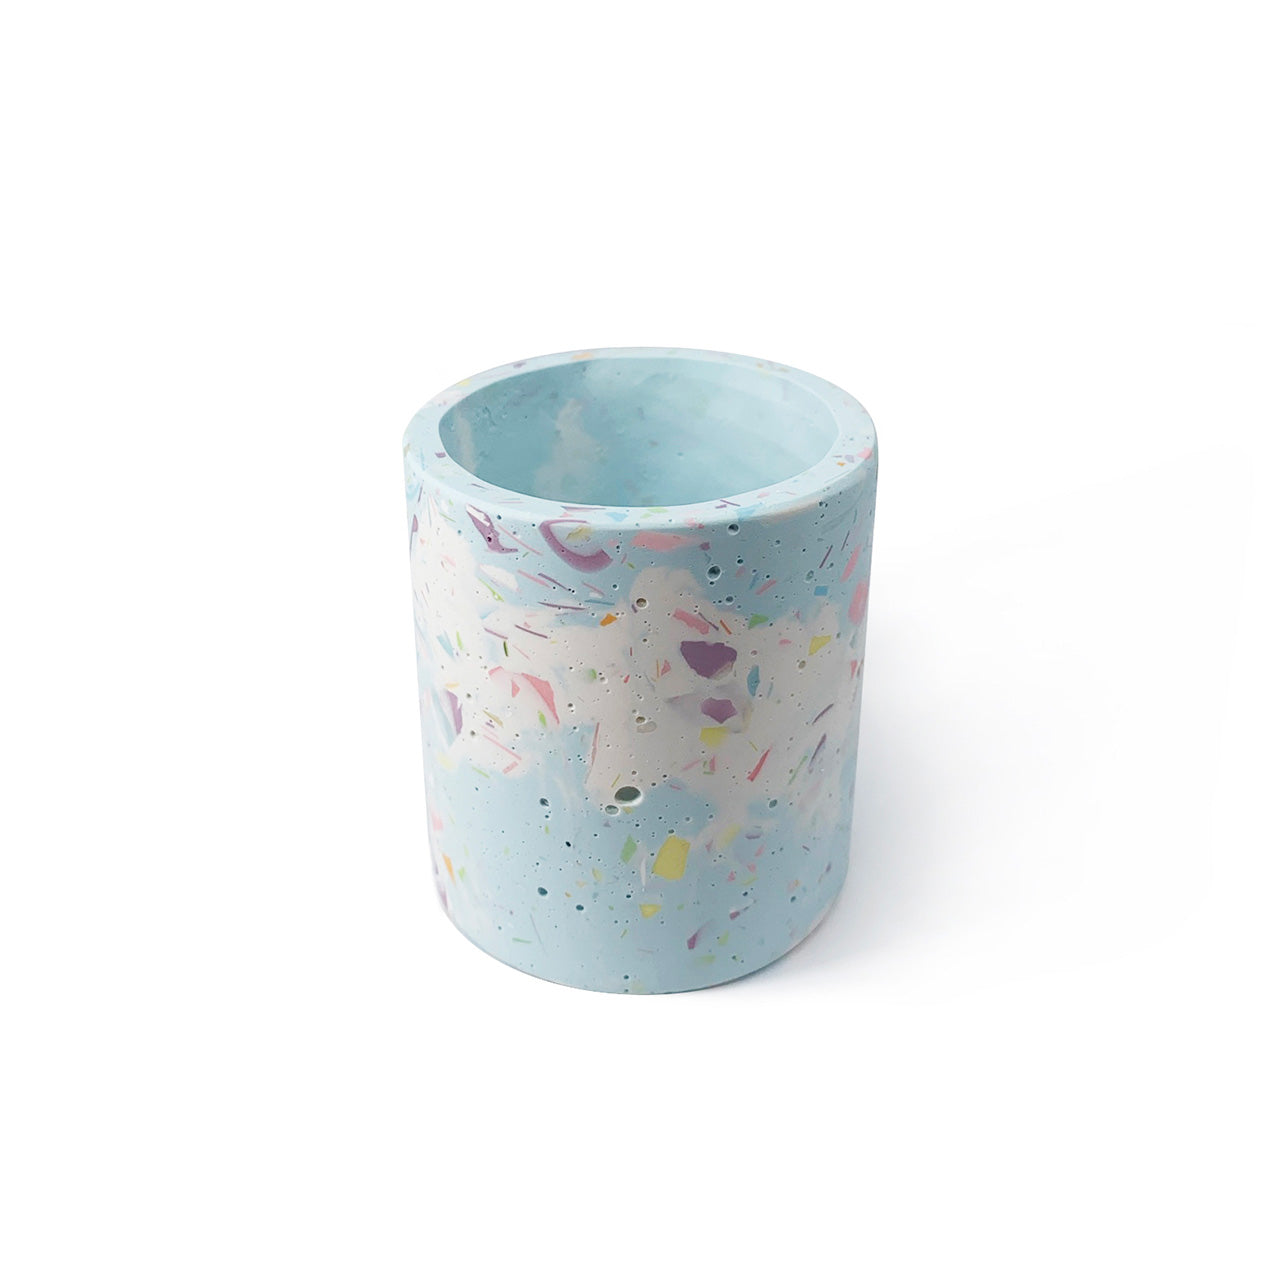 MINI POT (BLUE)